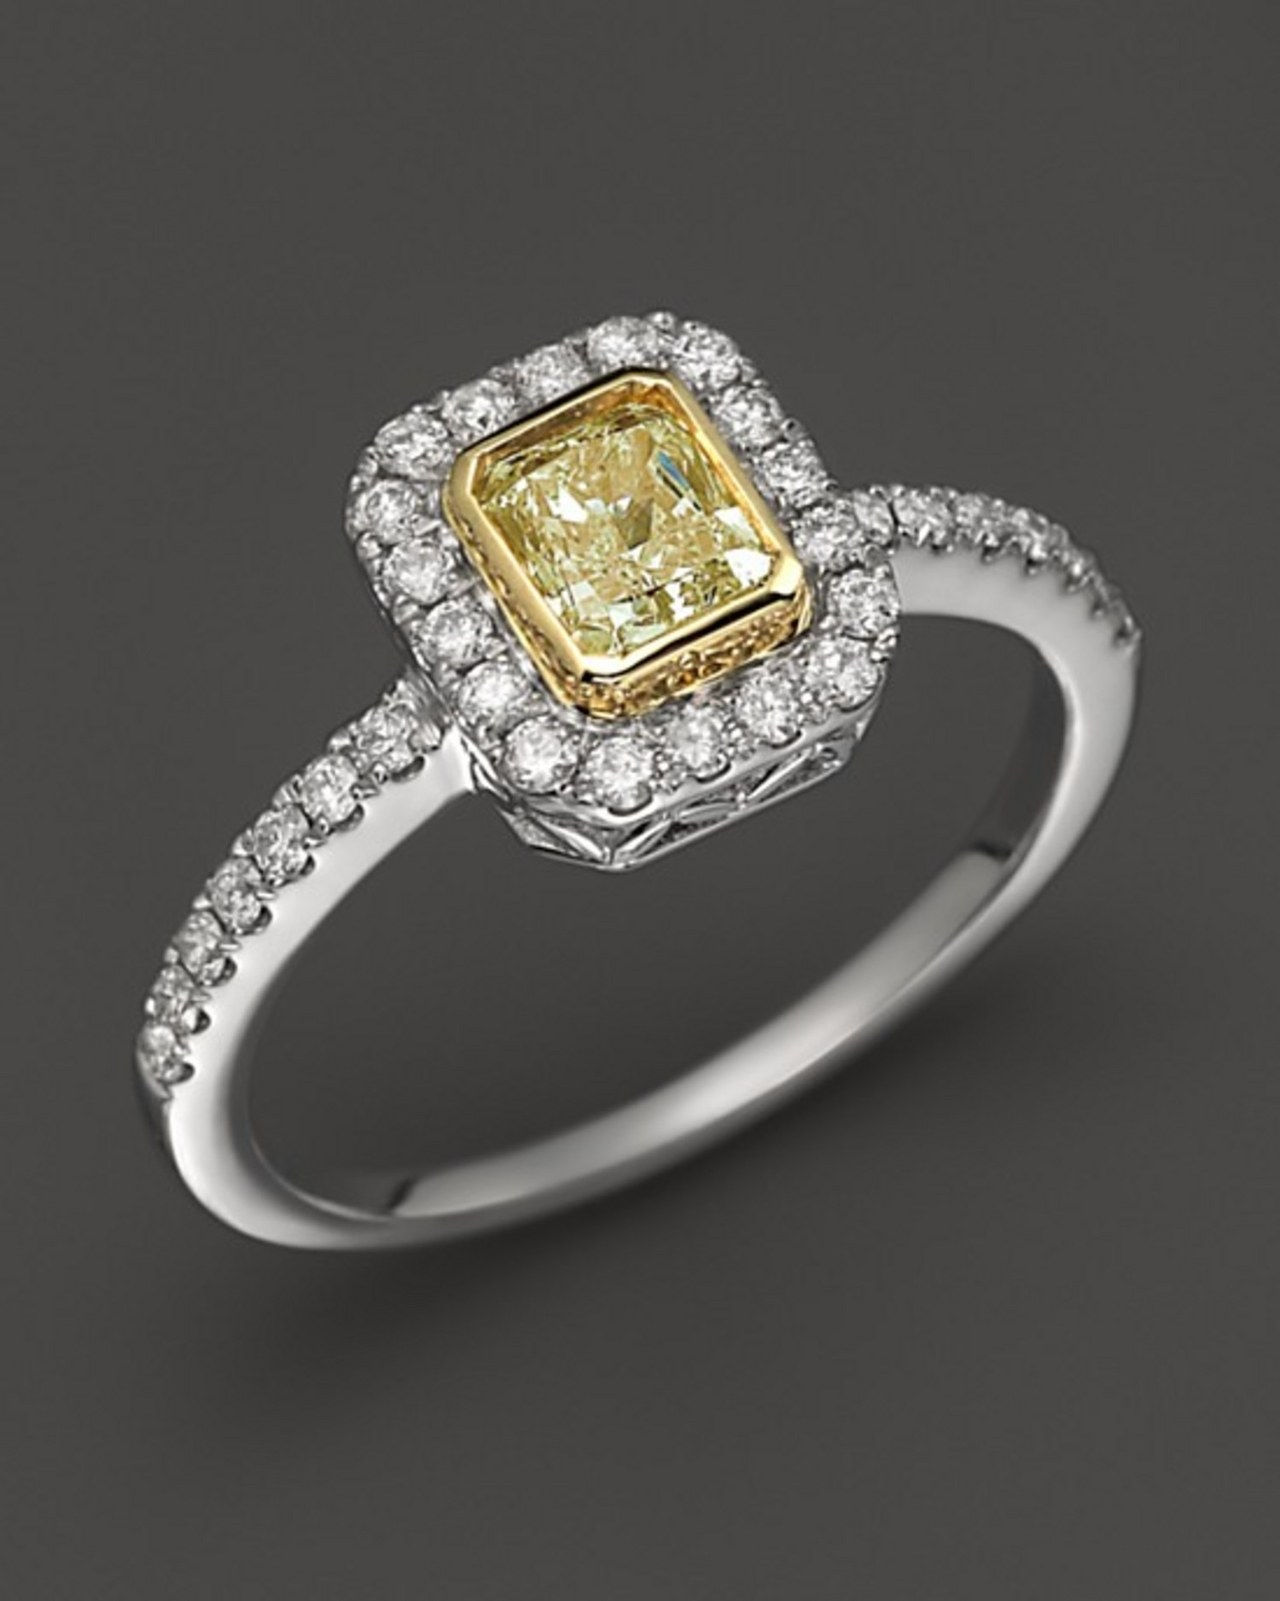 3 yelllow diamond engagement rings that look like kelly clarkson engagement ring 1216